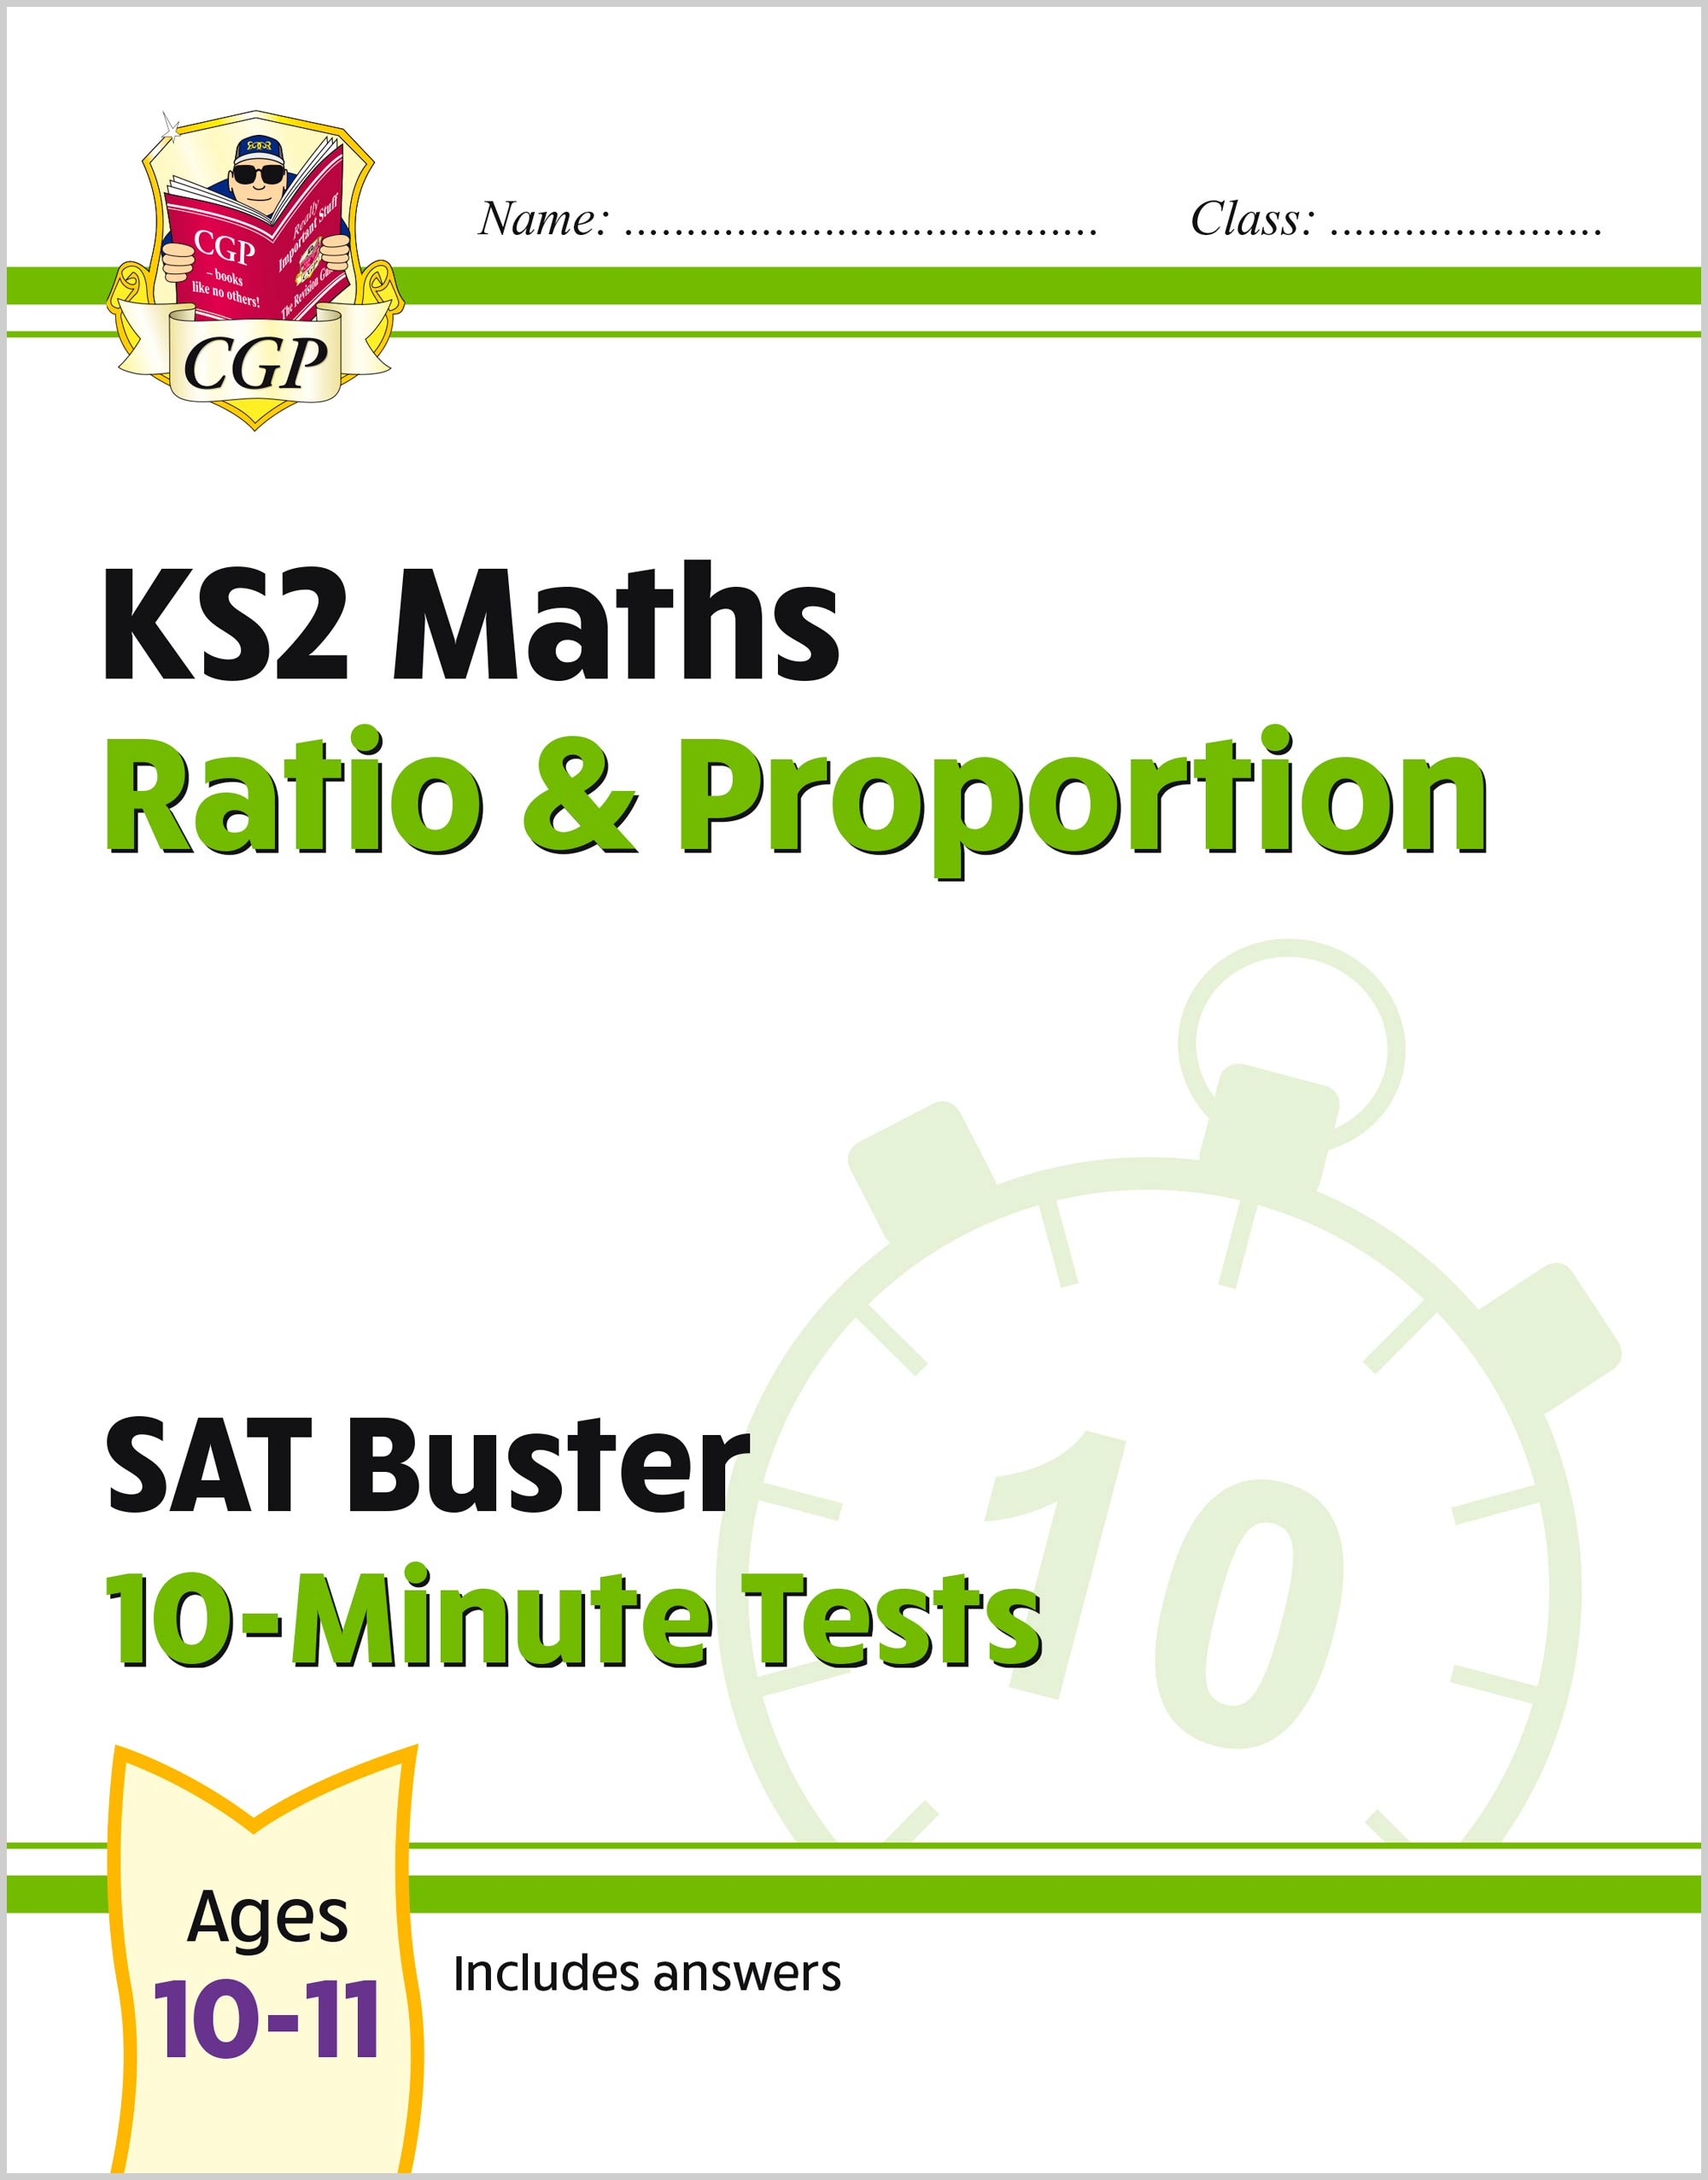 MRPXP21 - New KS2 Maths SAT Buster 10-Minute Tests - Ratio & Proportion (for the 2020 tests)